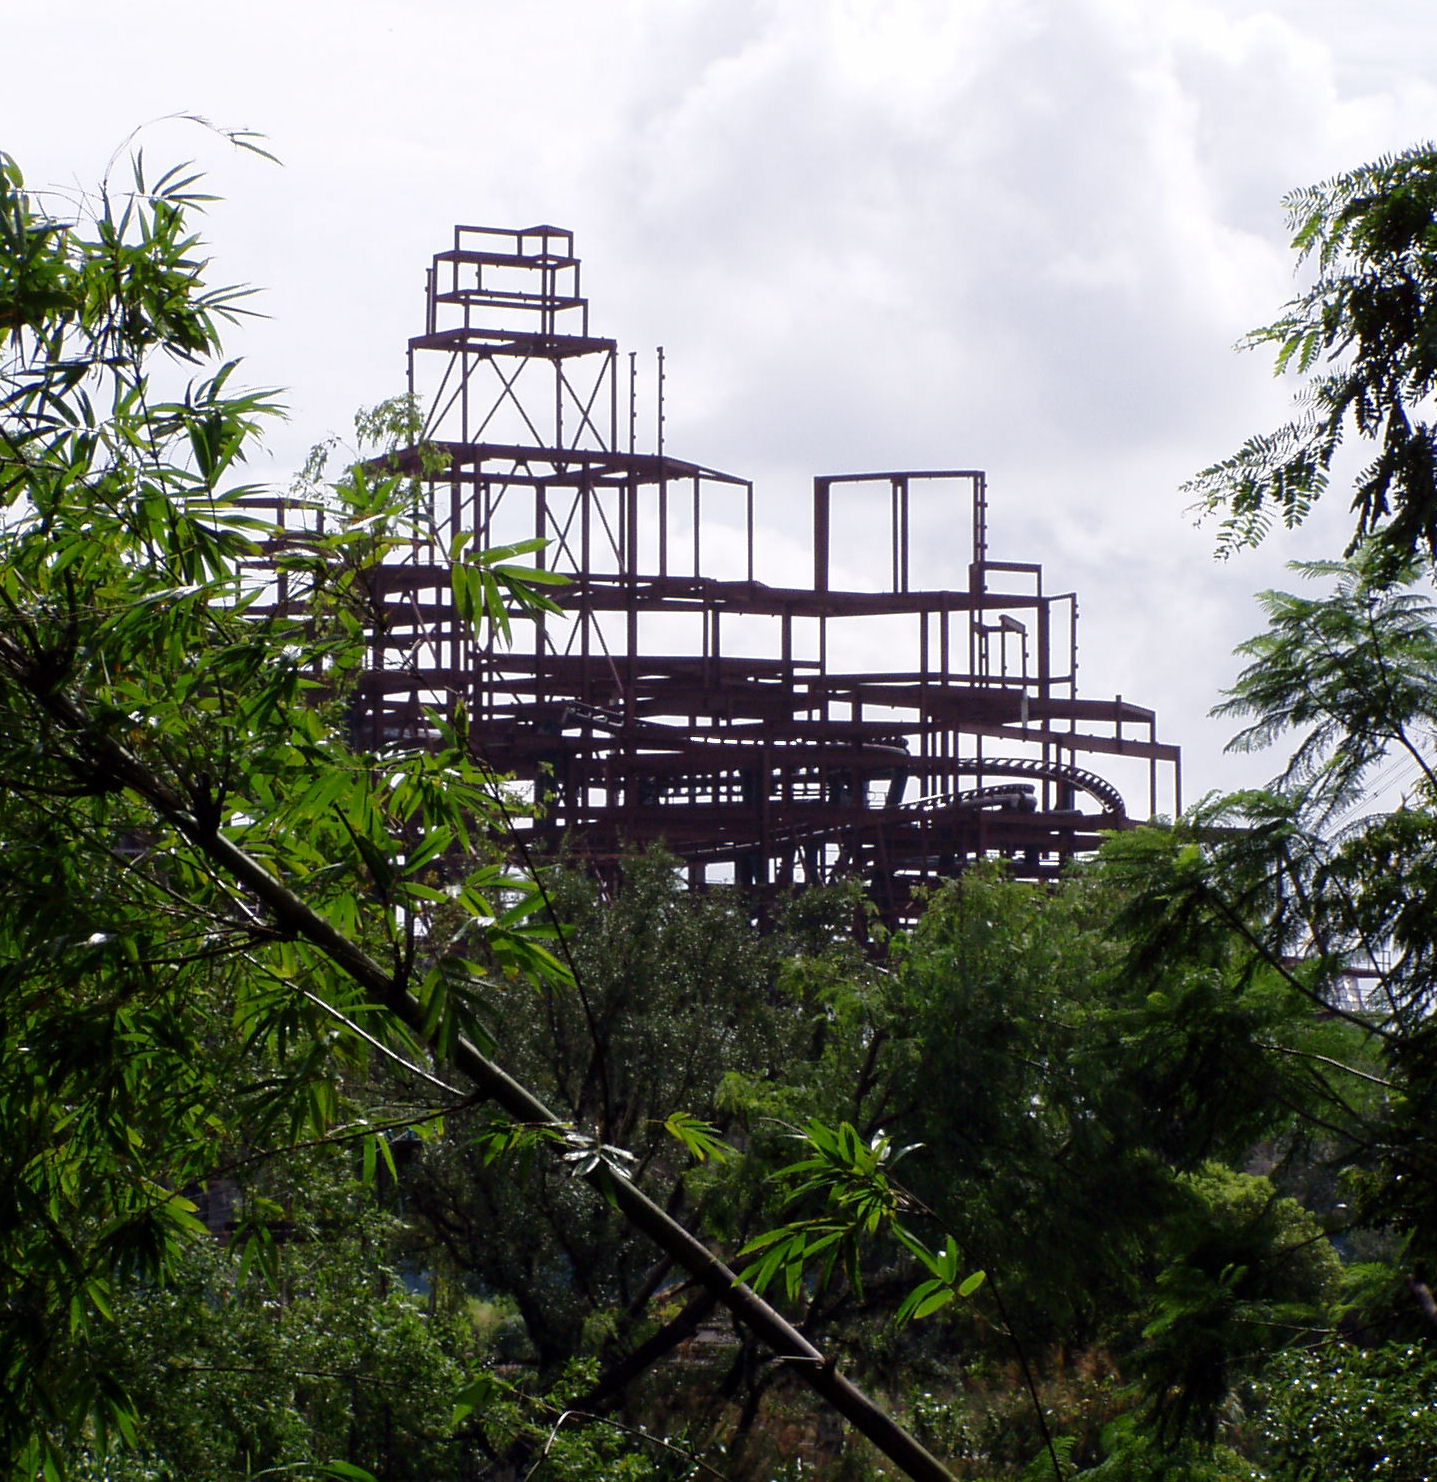 Another shot of the under construction Expedition Everest.